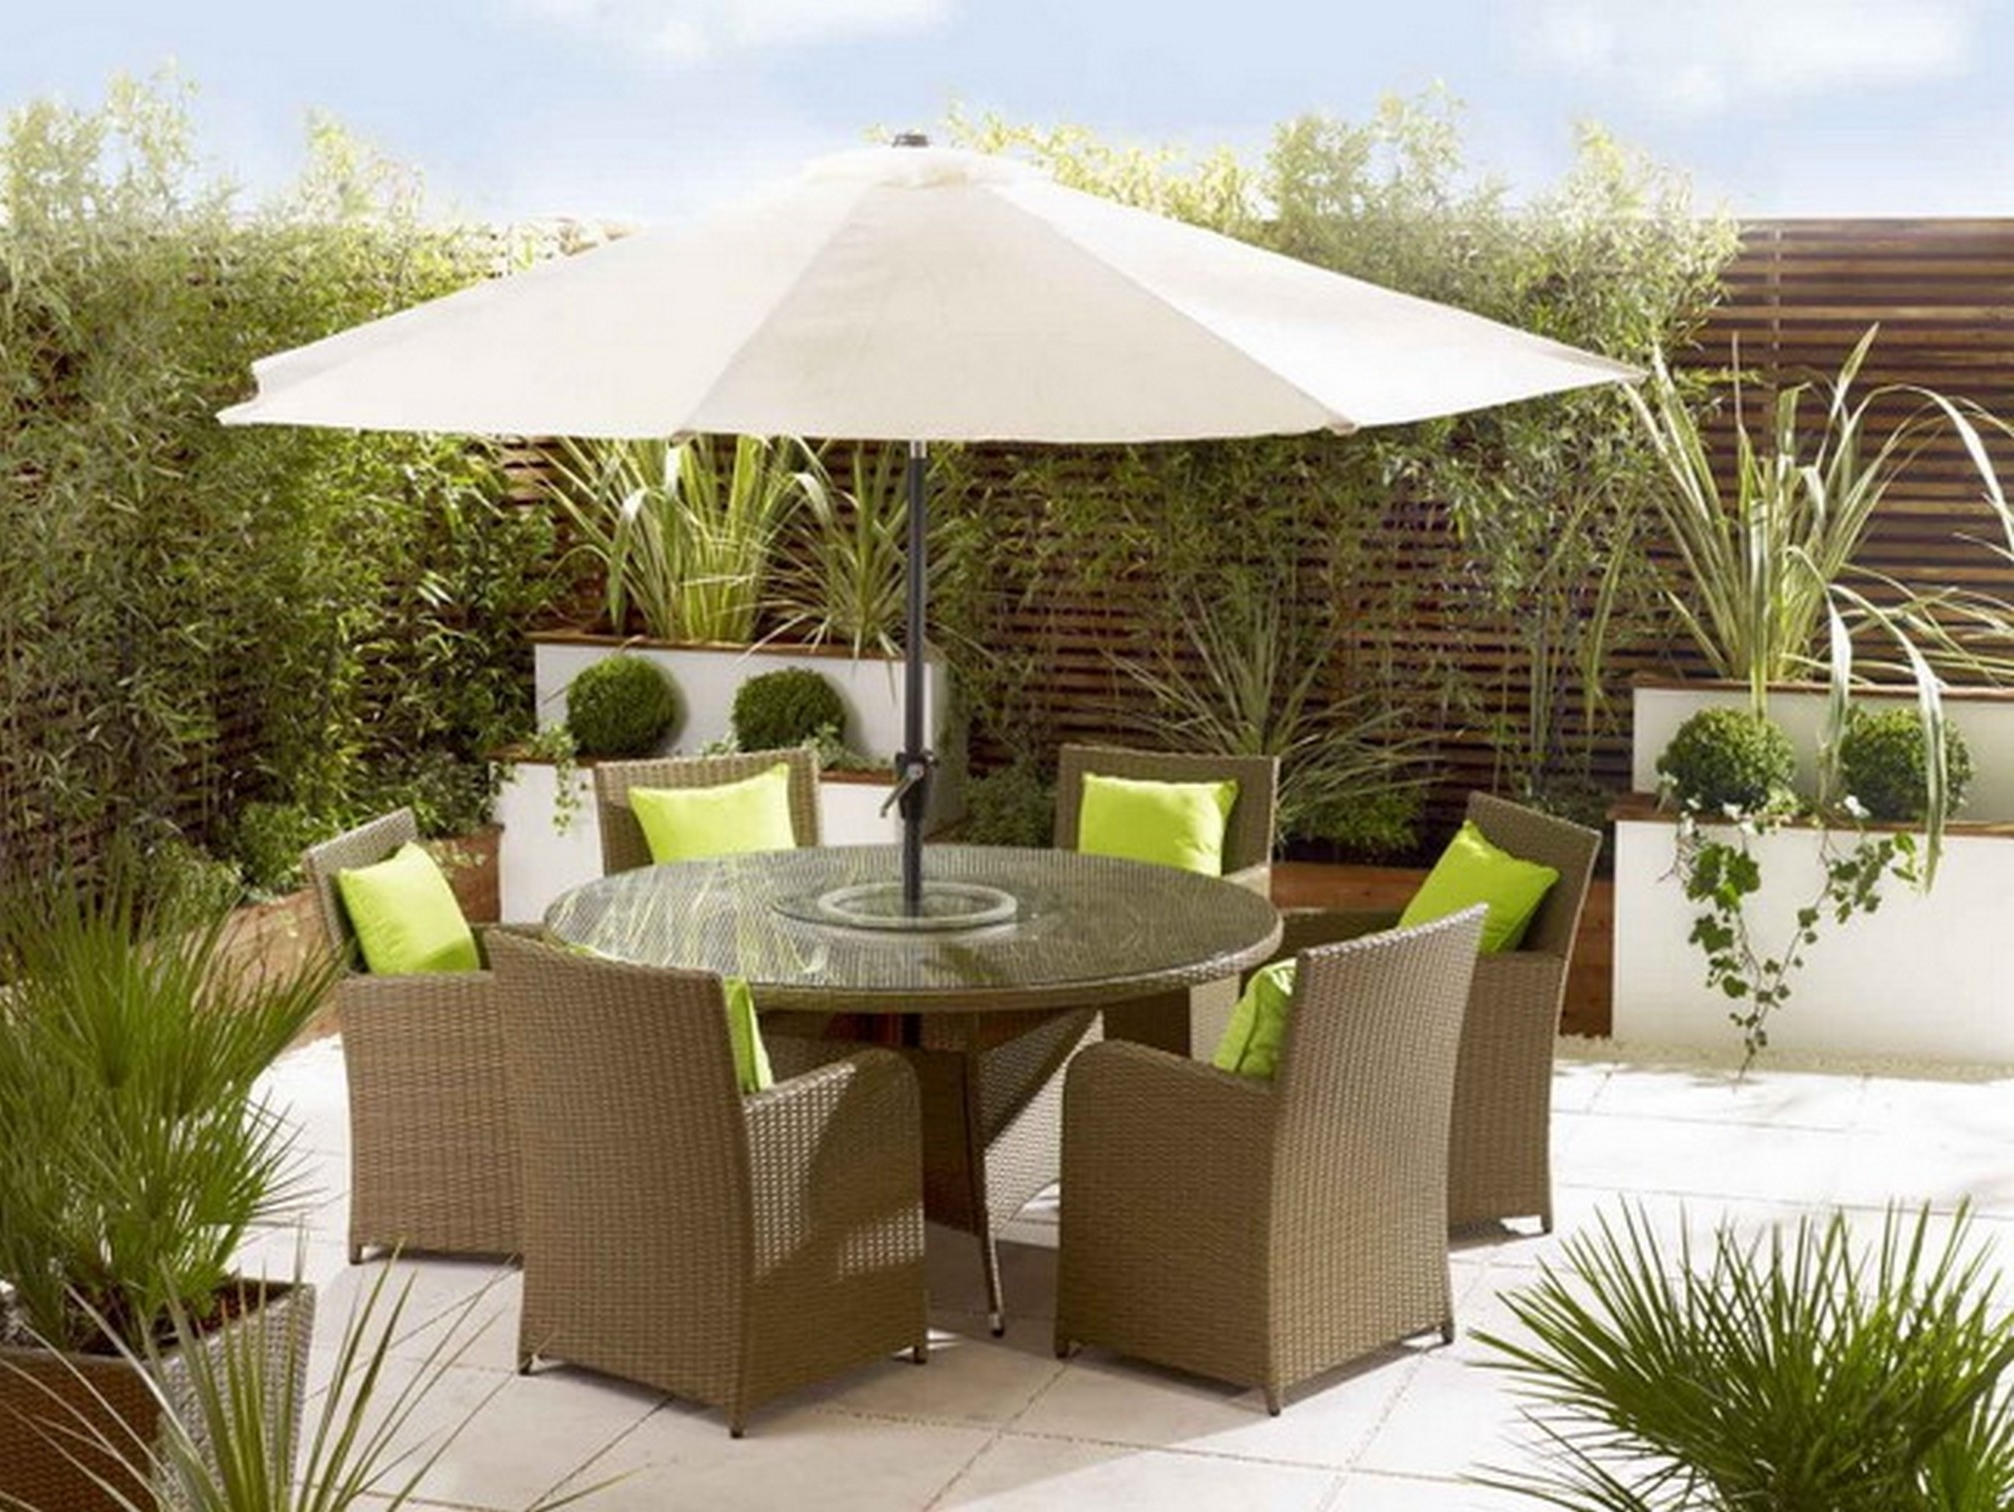 Well Known Patio Dining Umbrellas Within Patio Table Umbrella Cover — Mistikcamping Home Design : The Patio (View 18 of 20)